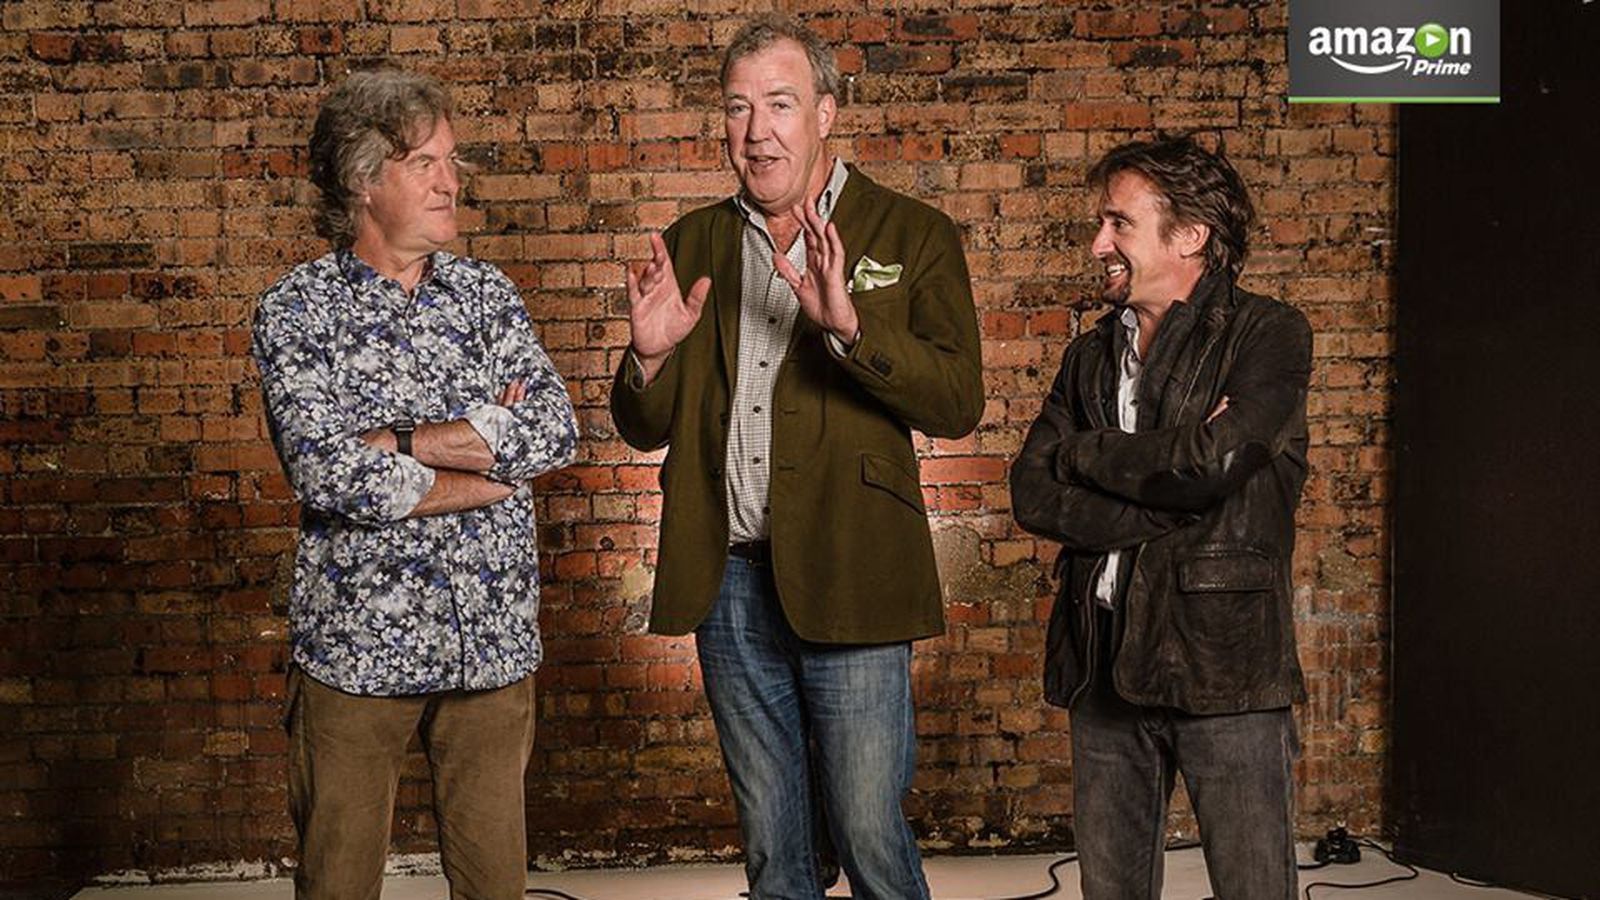 amazon signs top gear 39 s clarkson hammond and may for new show the verge. Black Bedroom Furniture Sets. Home Design Ideas